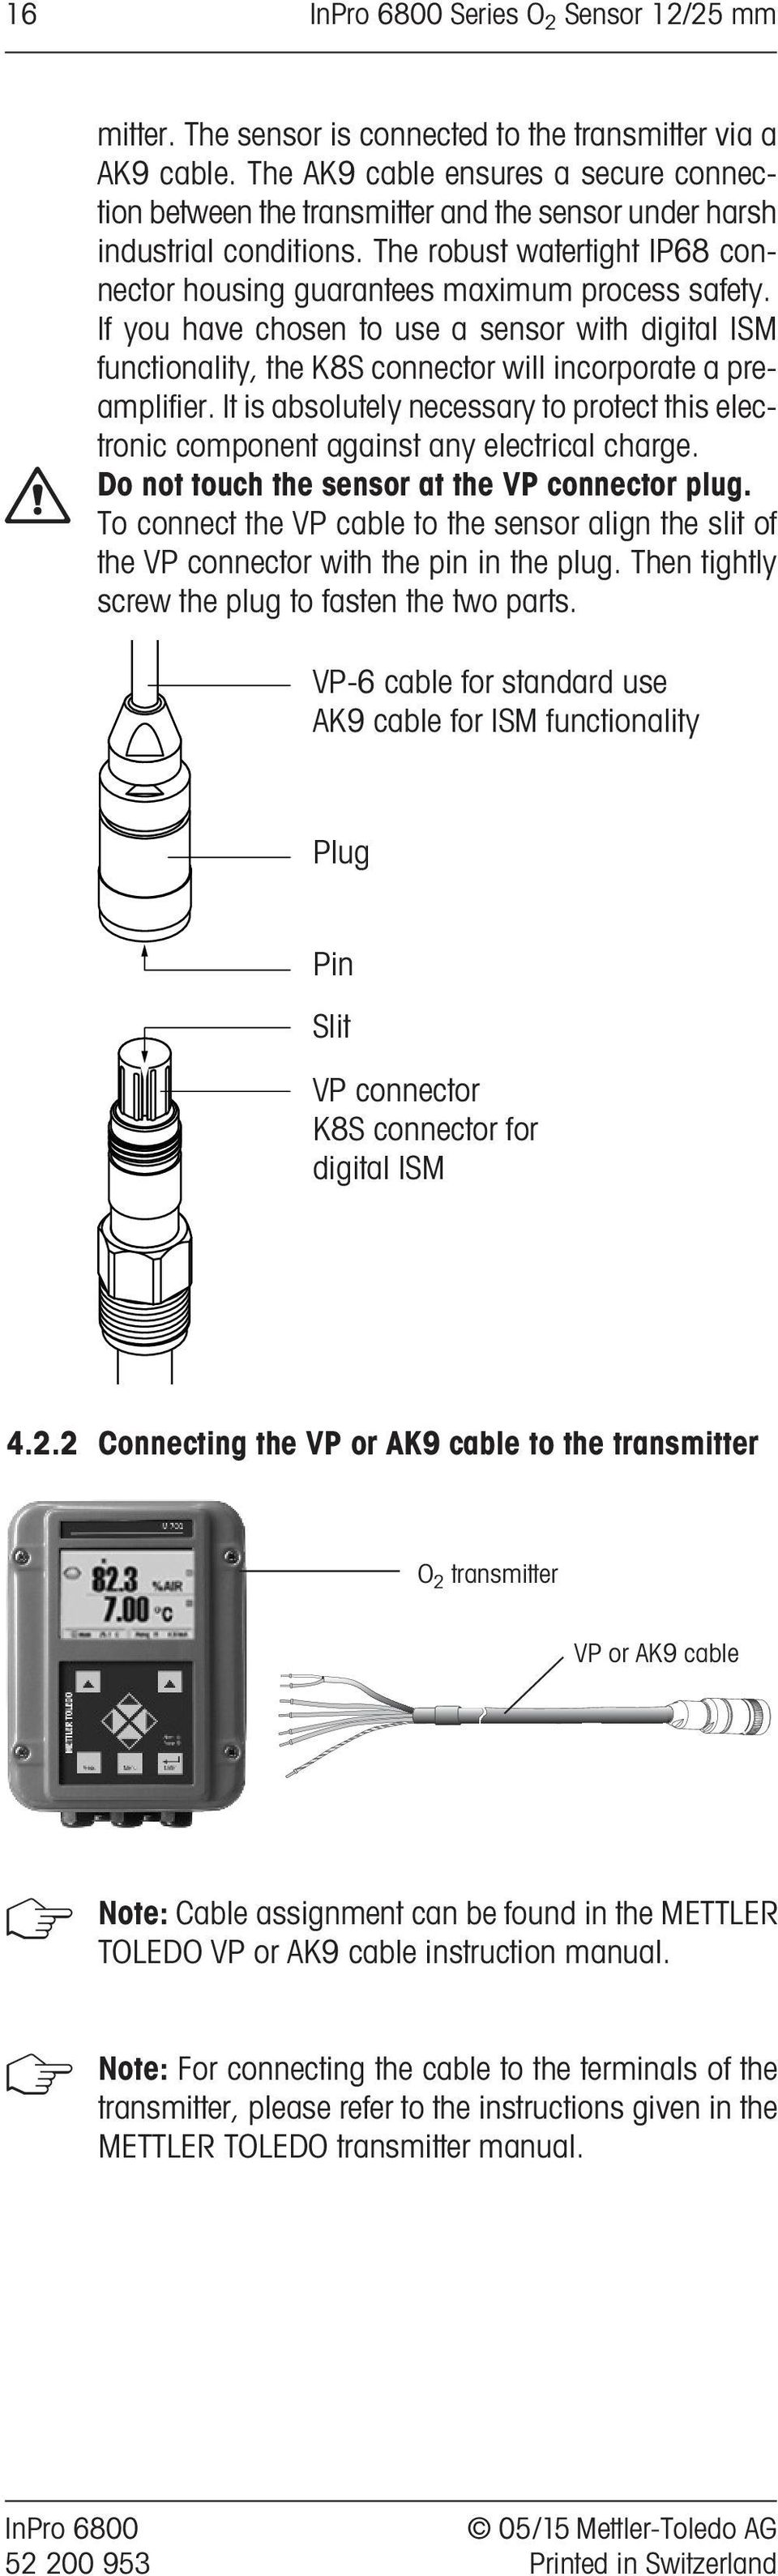 If you have chosen to use a sensor with digital ISM functionality, the K8S connector will incorporate a preamplifier.